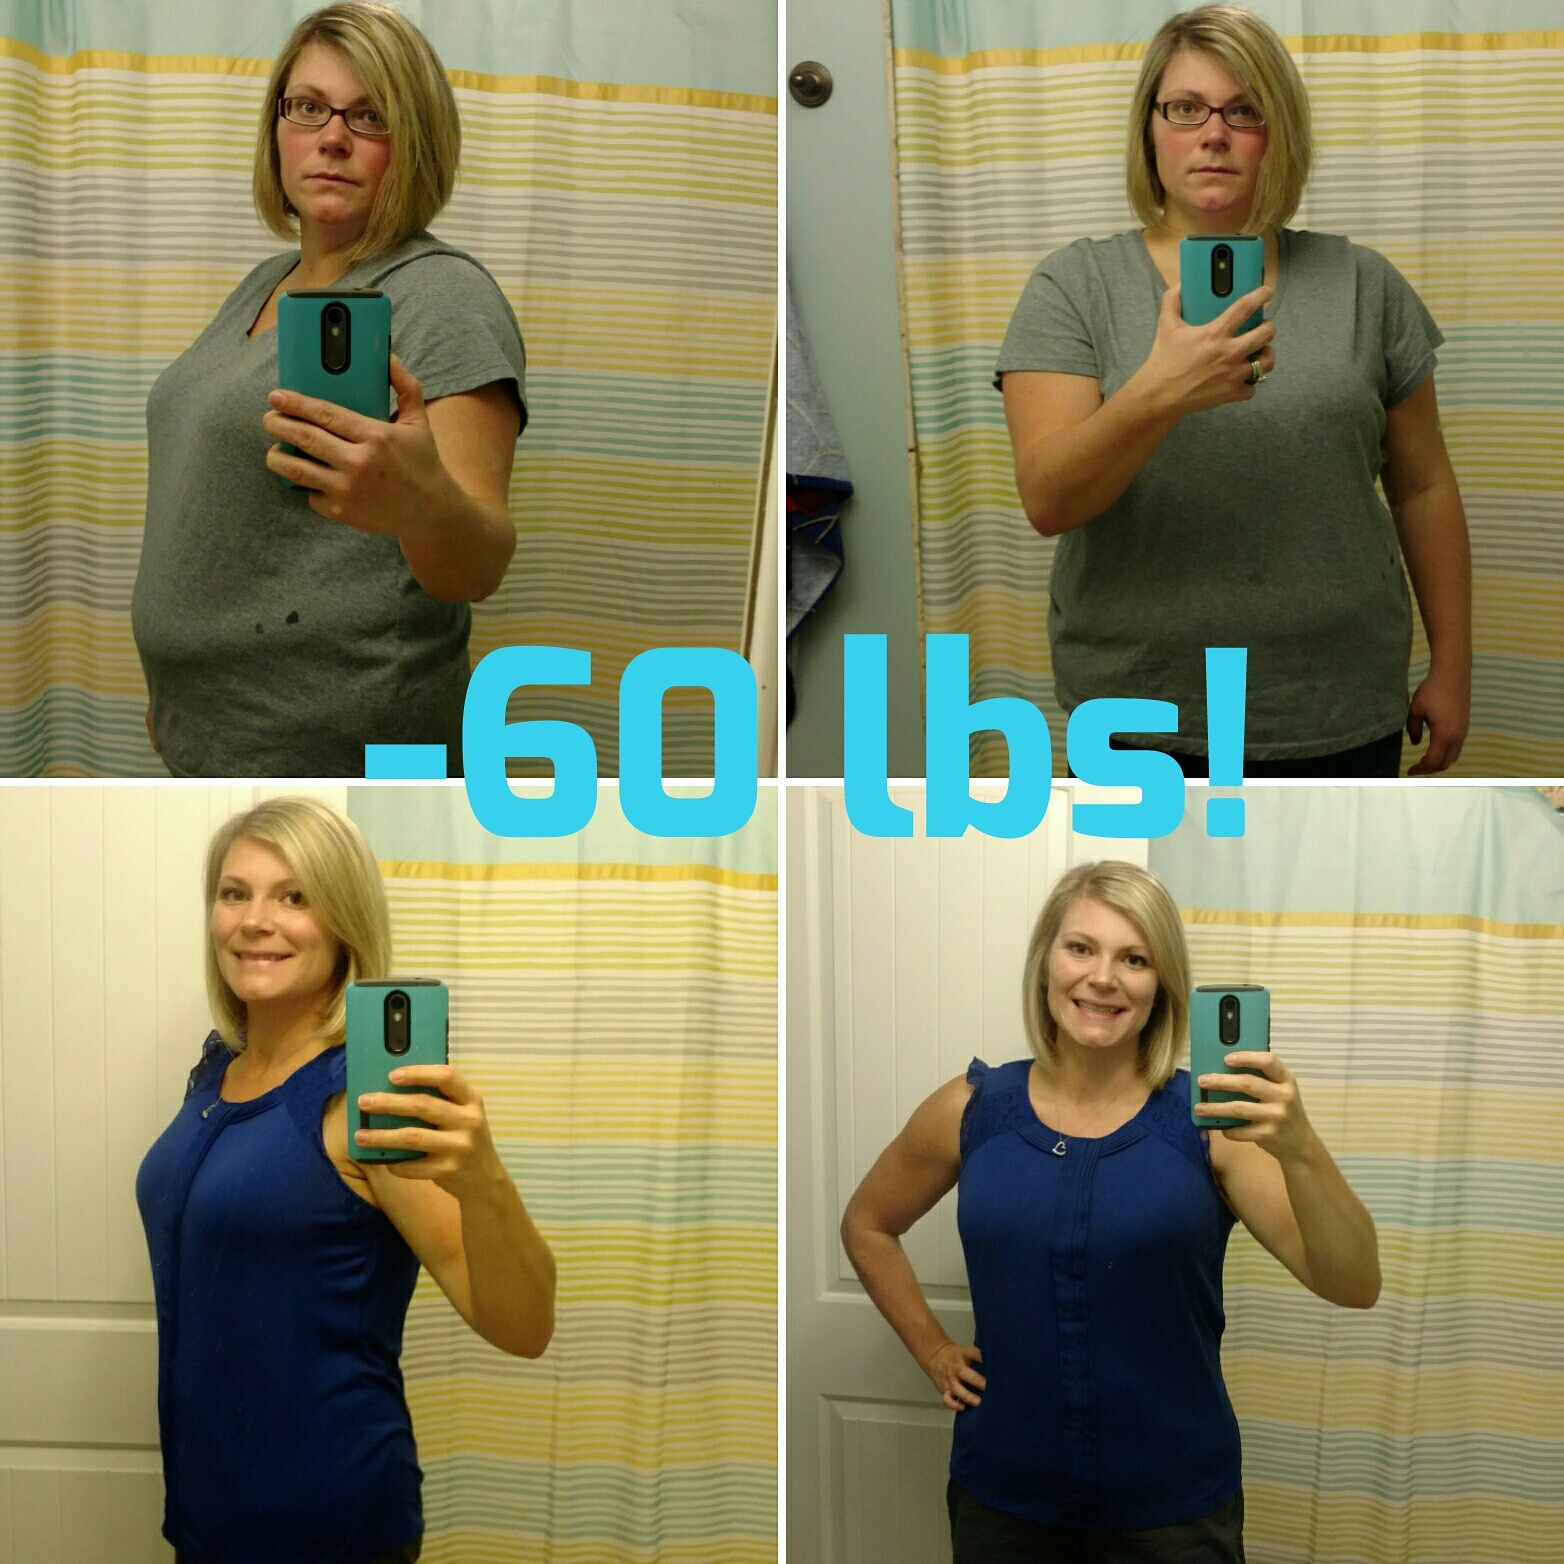 60 pound weight loss photos